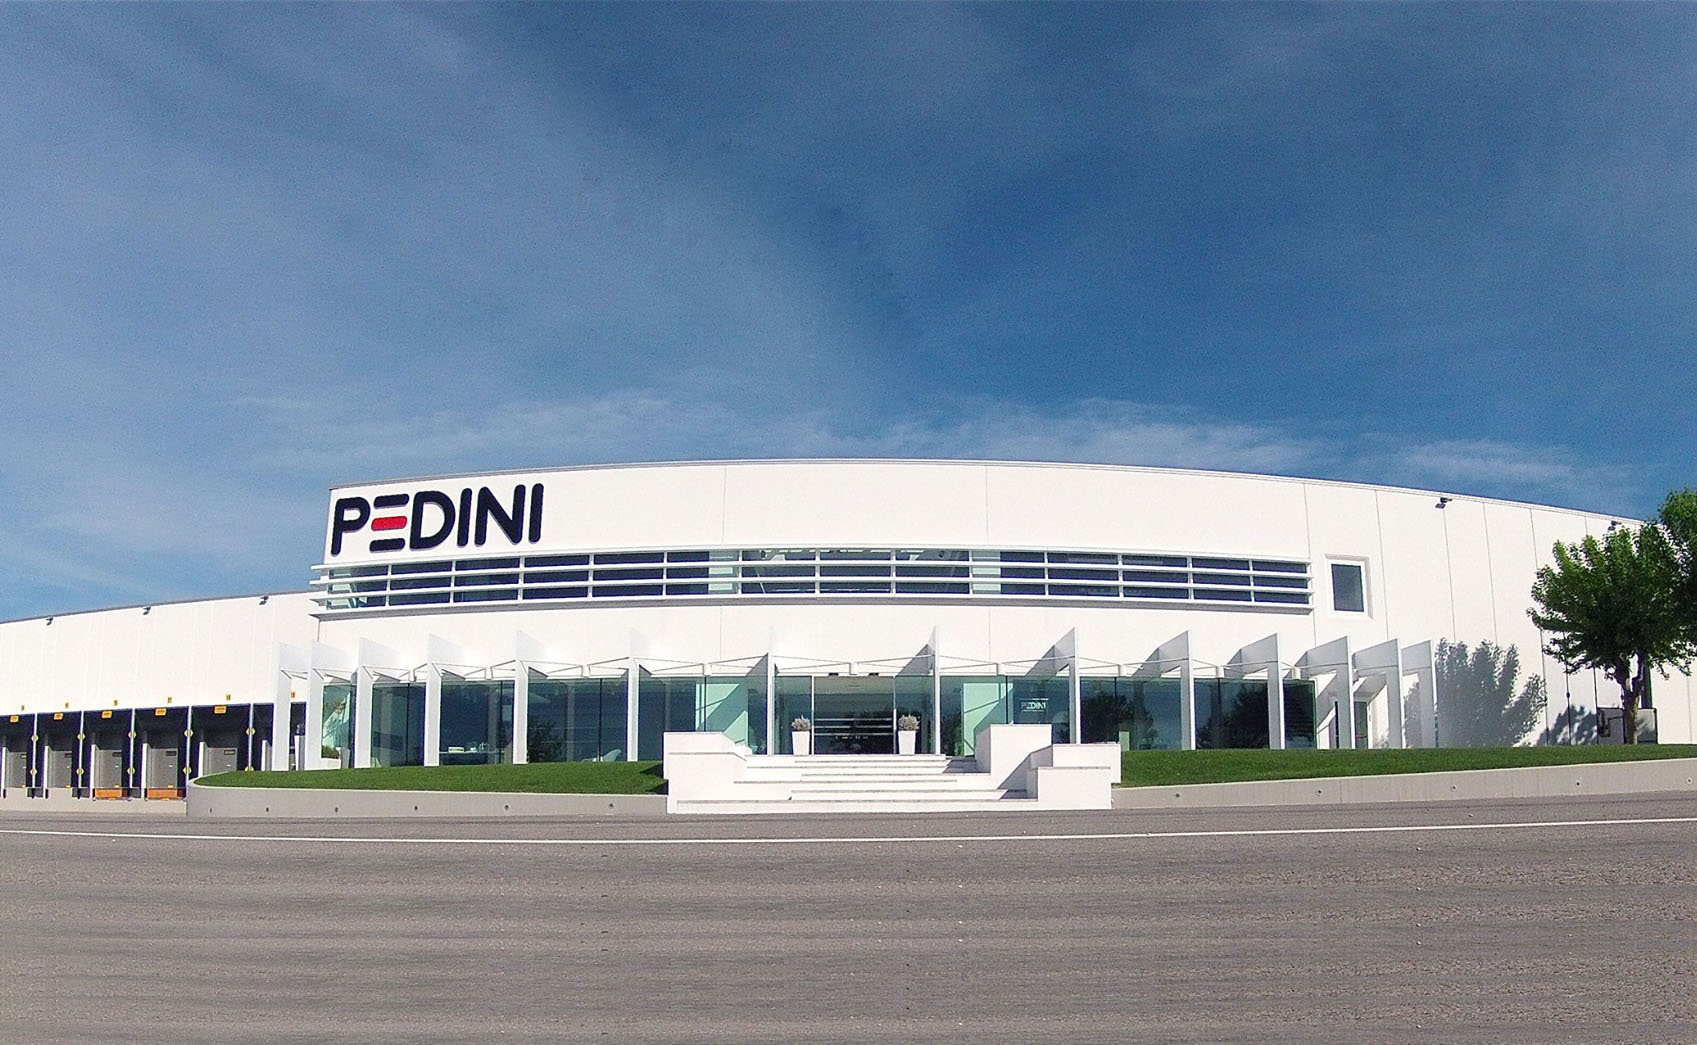 Pedini Cucine nuovo sponsor di Chef in the City